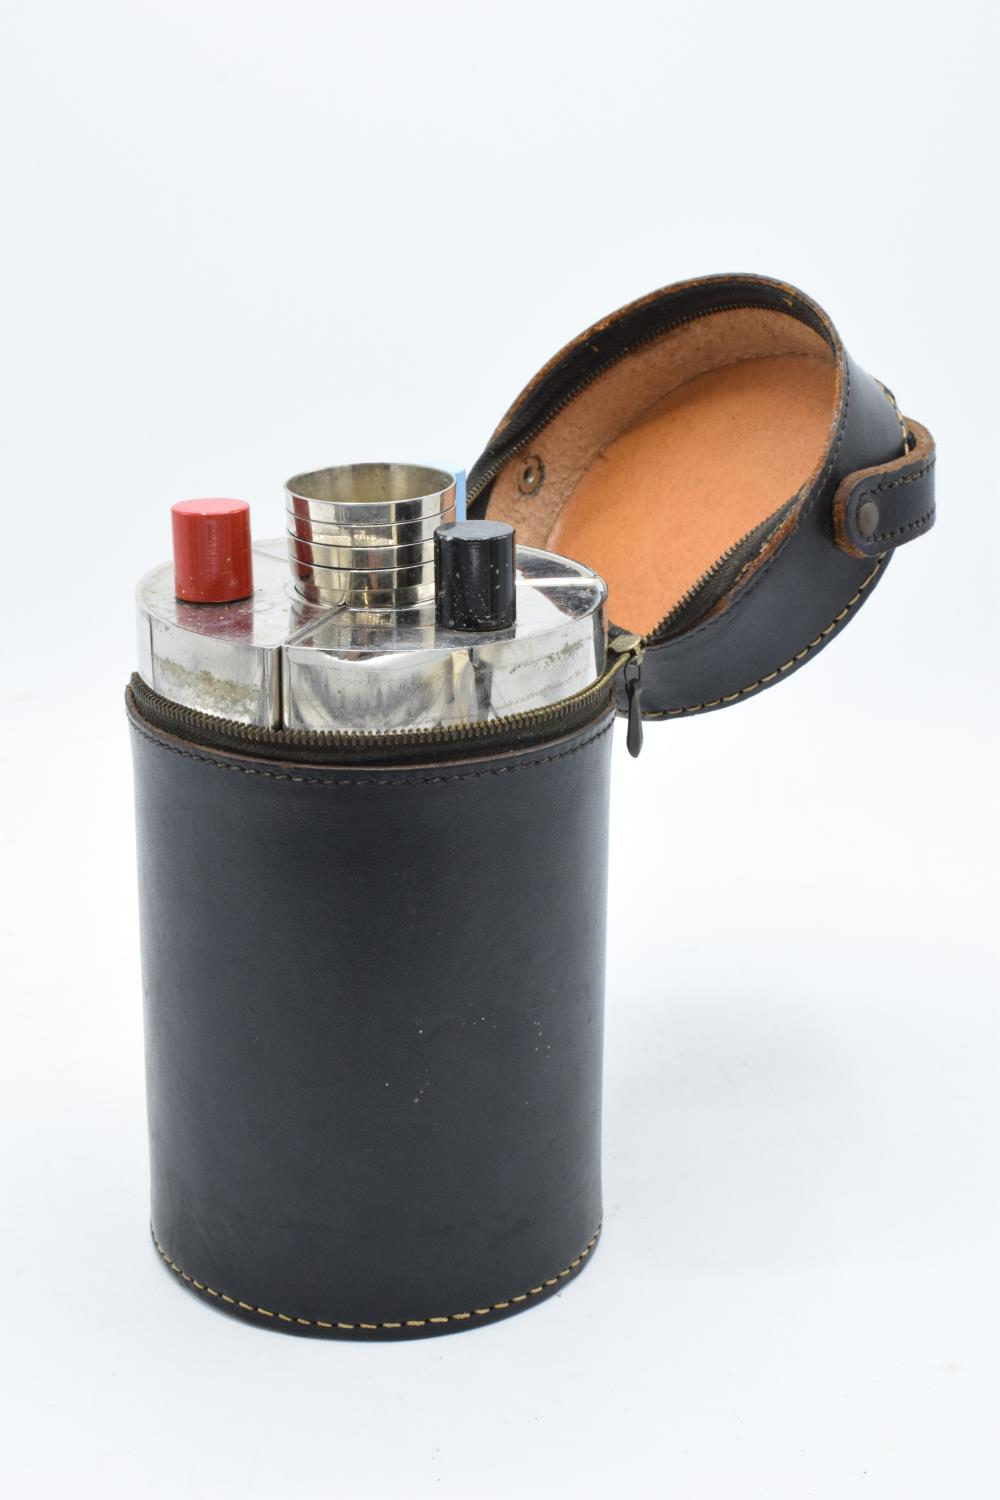 A 20th century travelling drinks set to include 3 flasks and 4 cups in a leather carry case.